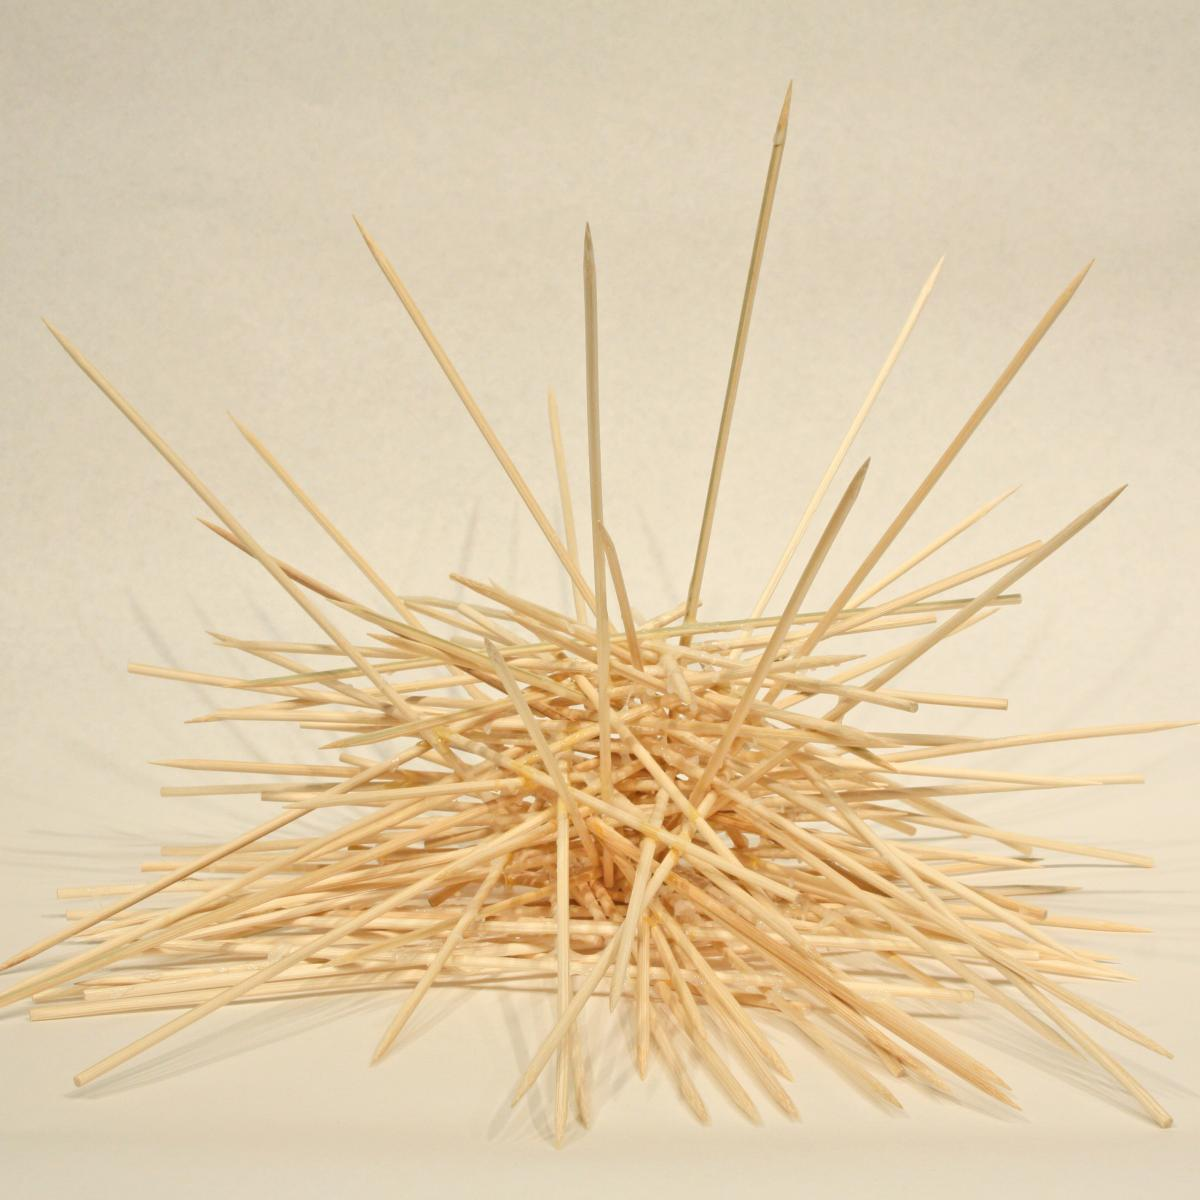 Wooden sticks stuck together forming a cluster.